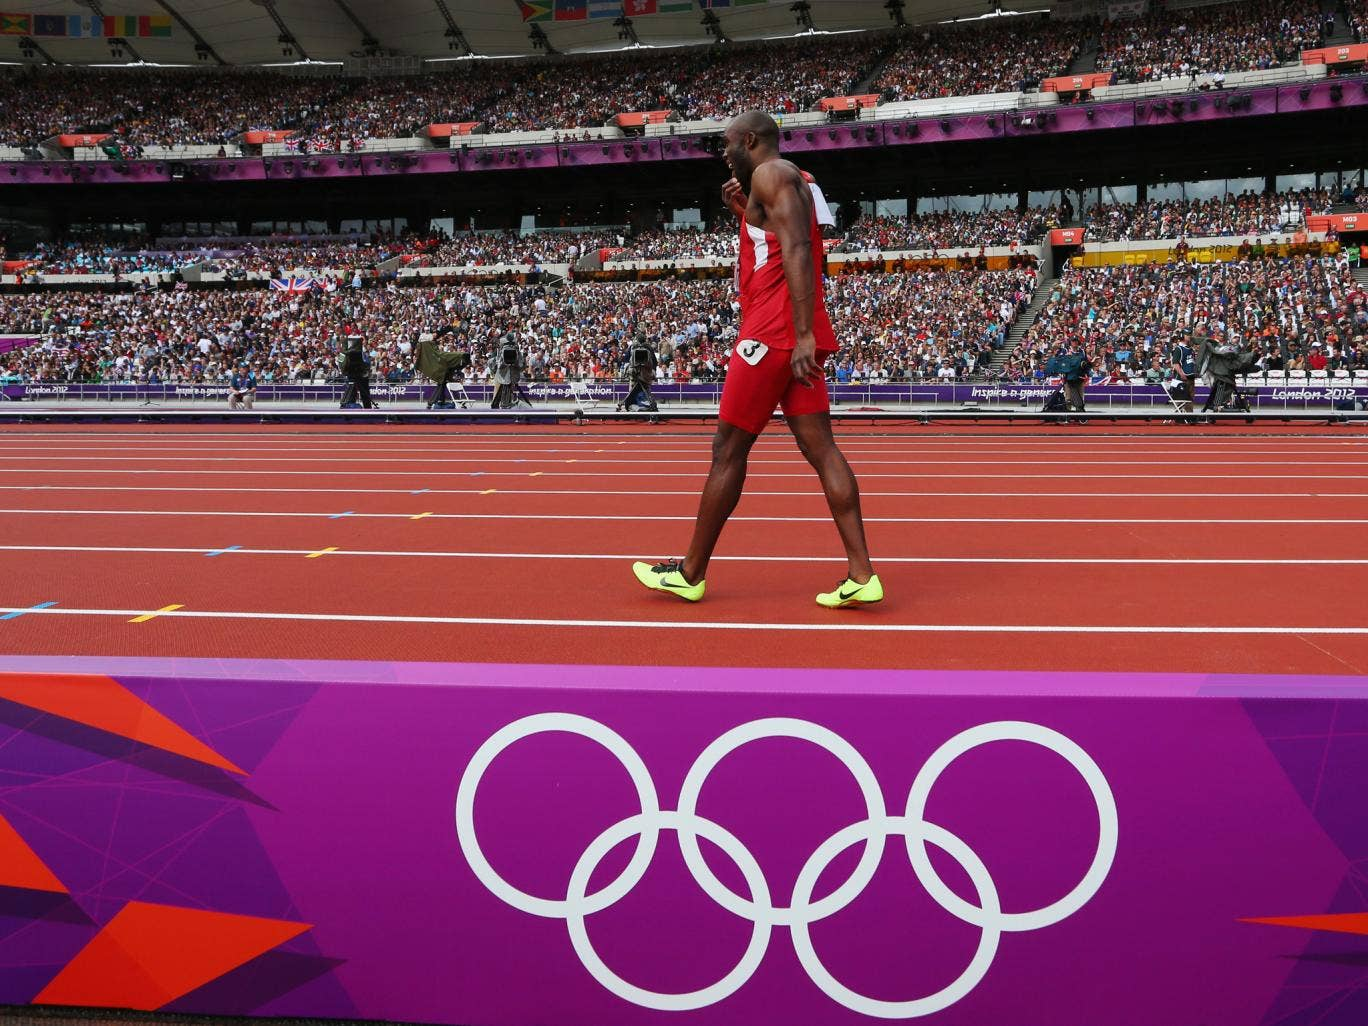 American sprinter LaShawn Merritt was cleared to compete at London 2012 but pulled up in the 400 metres semi-final with a hamstring problem